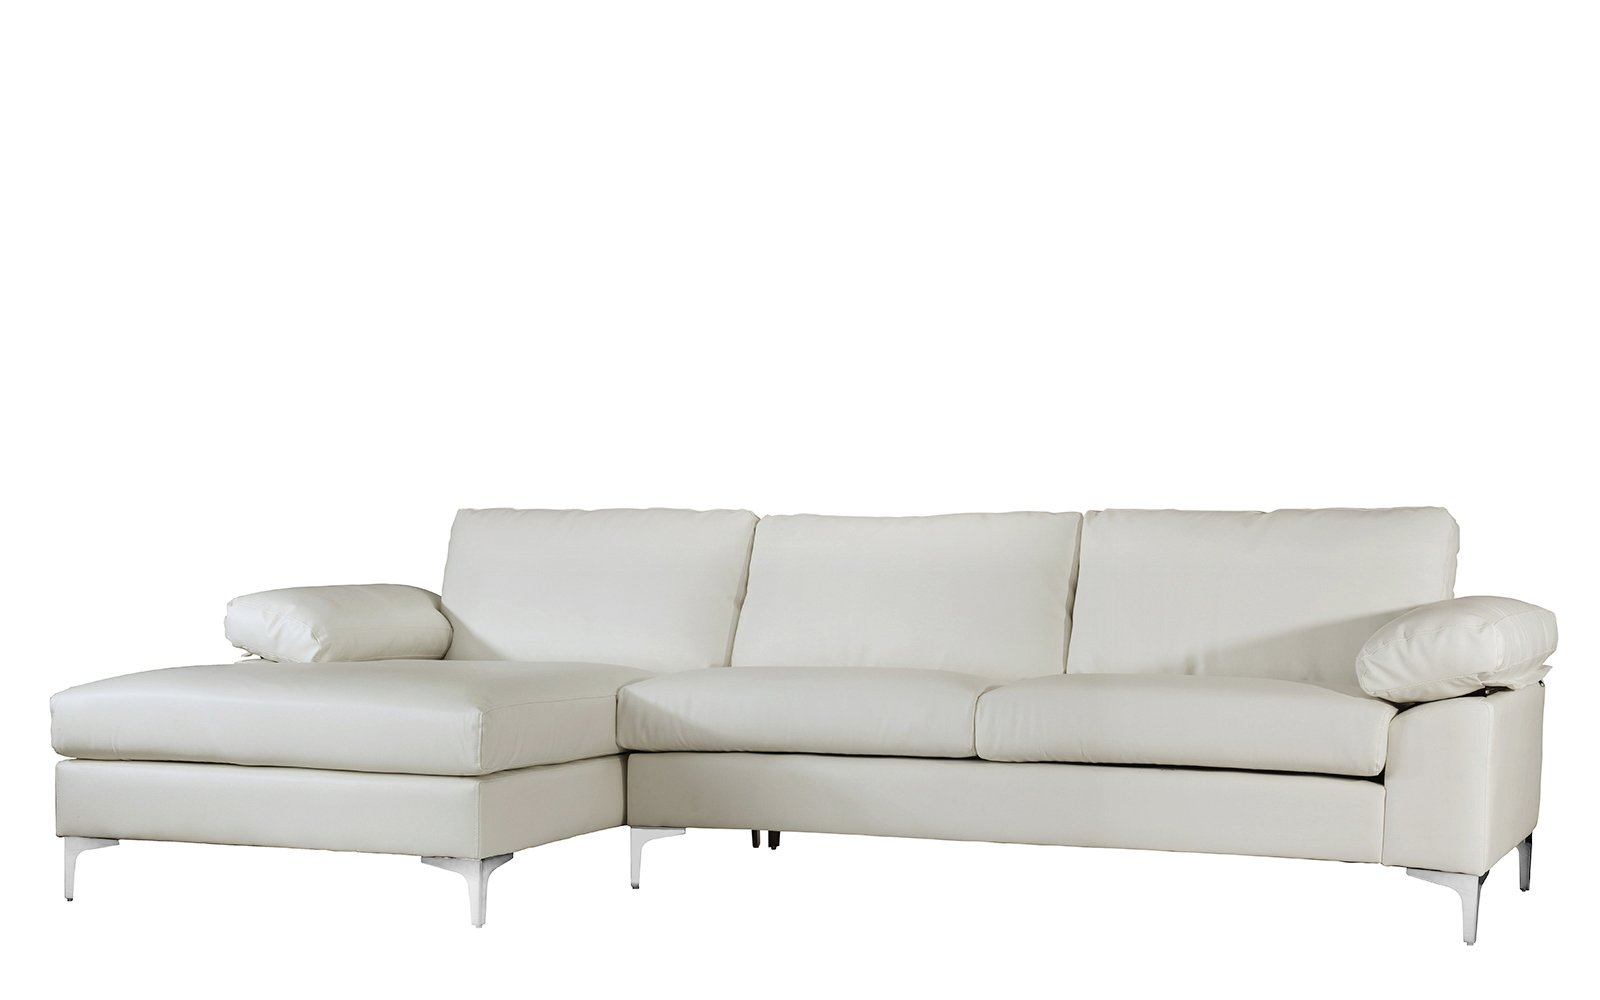 Casa Andrea Modern Large Faux Leather Sectional Sofa, L-Shape Couch with Extra Wide Chaise Lounge (White) by Casa Andrea